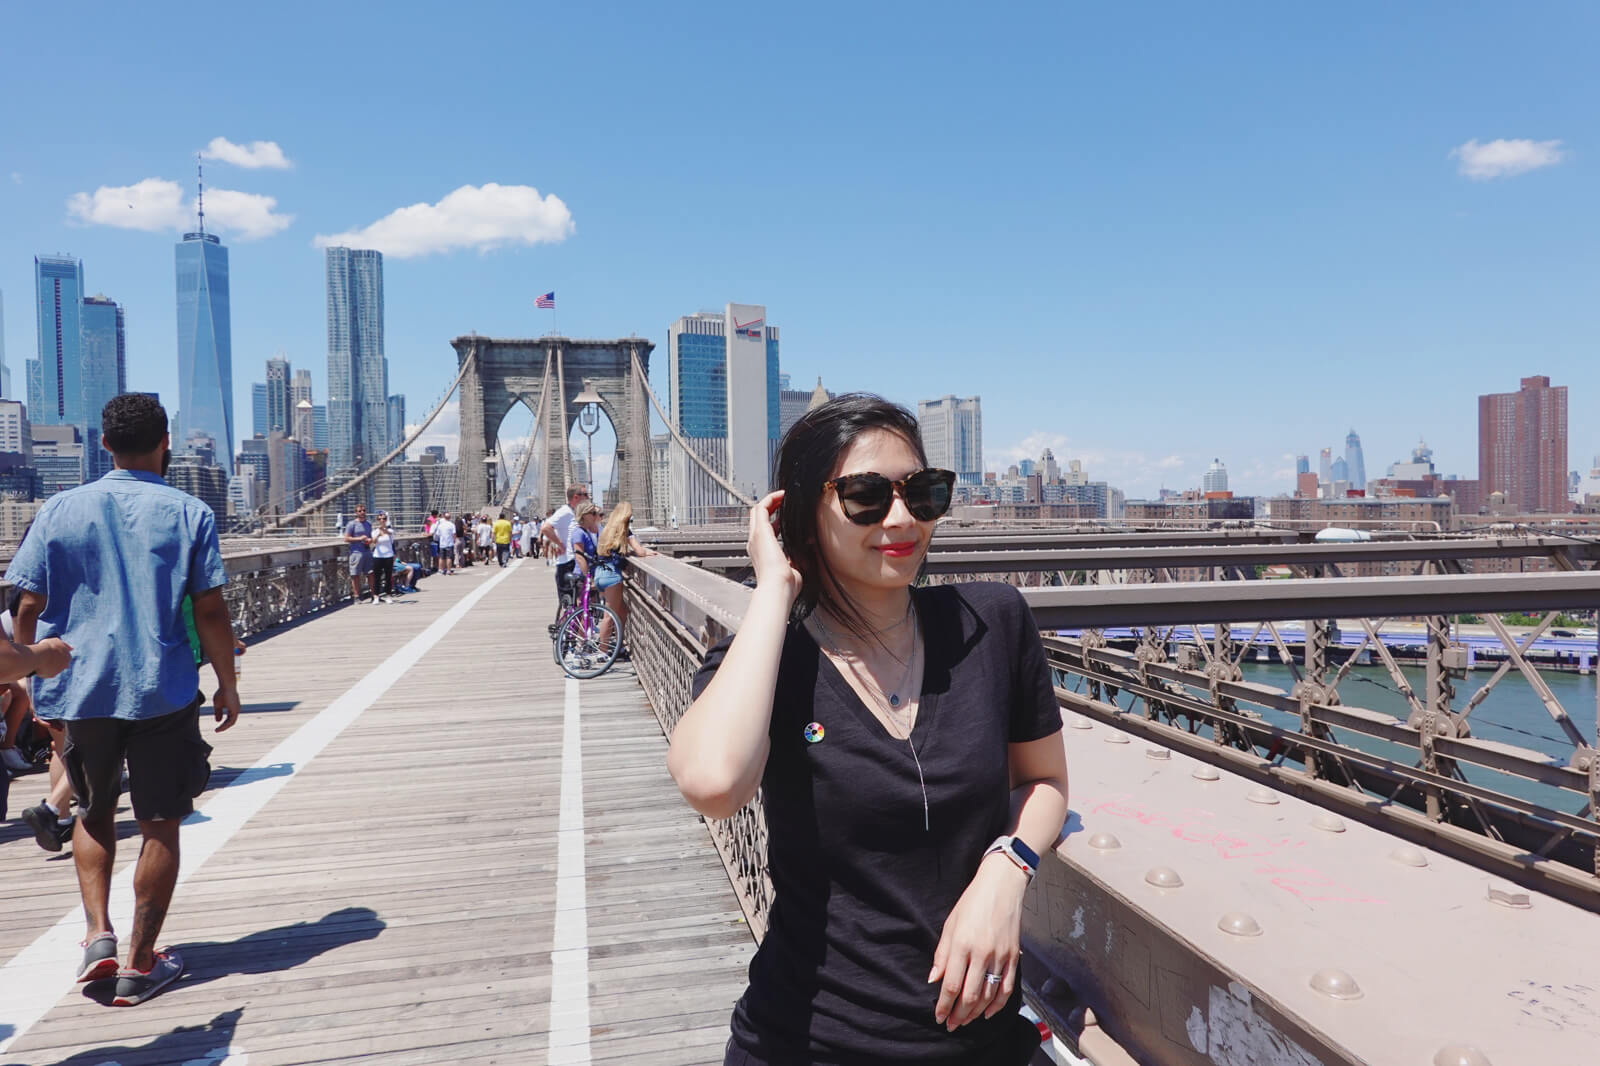 A woman in a black t-shirt, wearing sunglasses. She is standing on a bridge with high-rise buildings in the background. There are other people bicycling and standing on the bridge